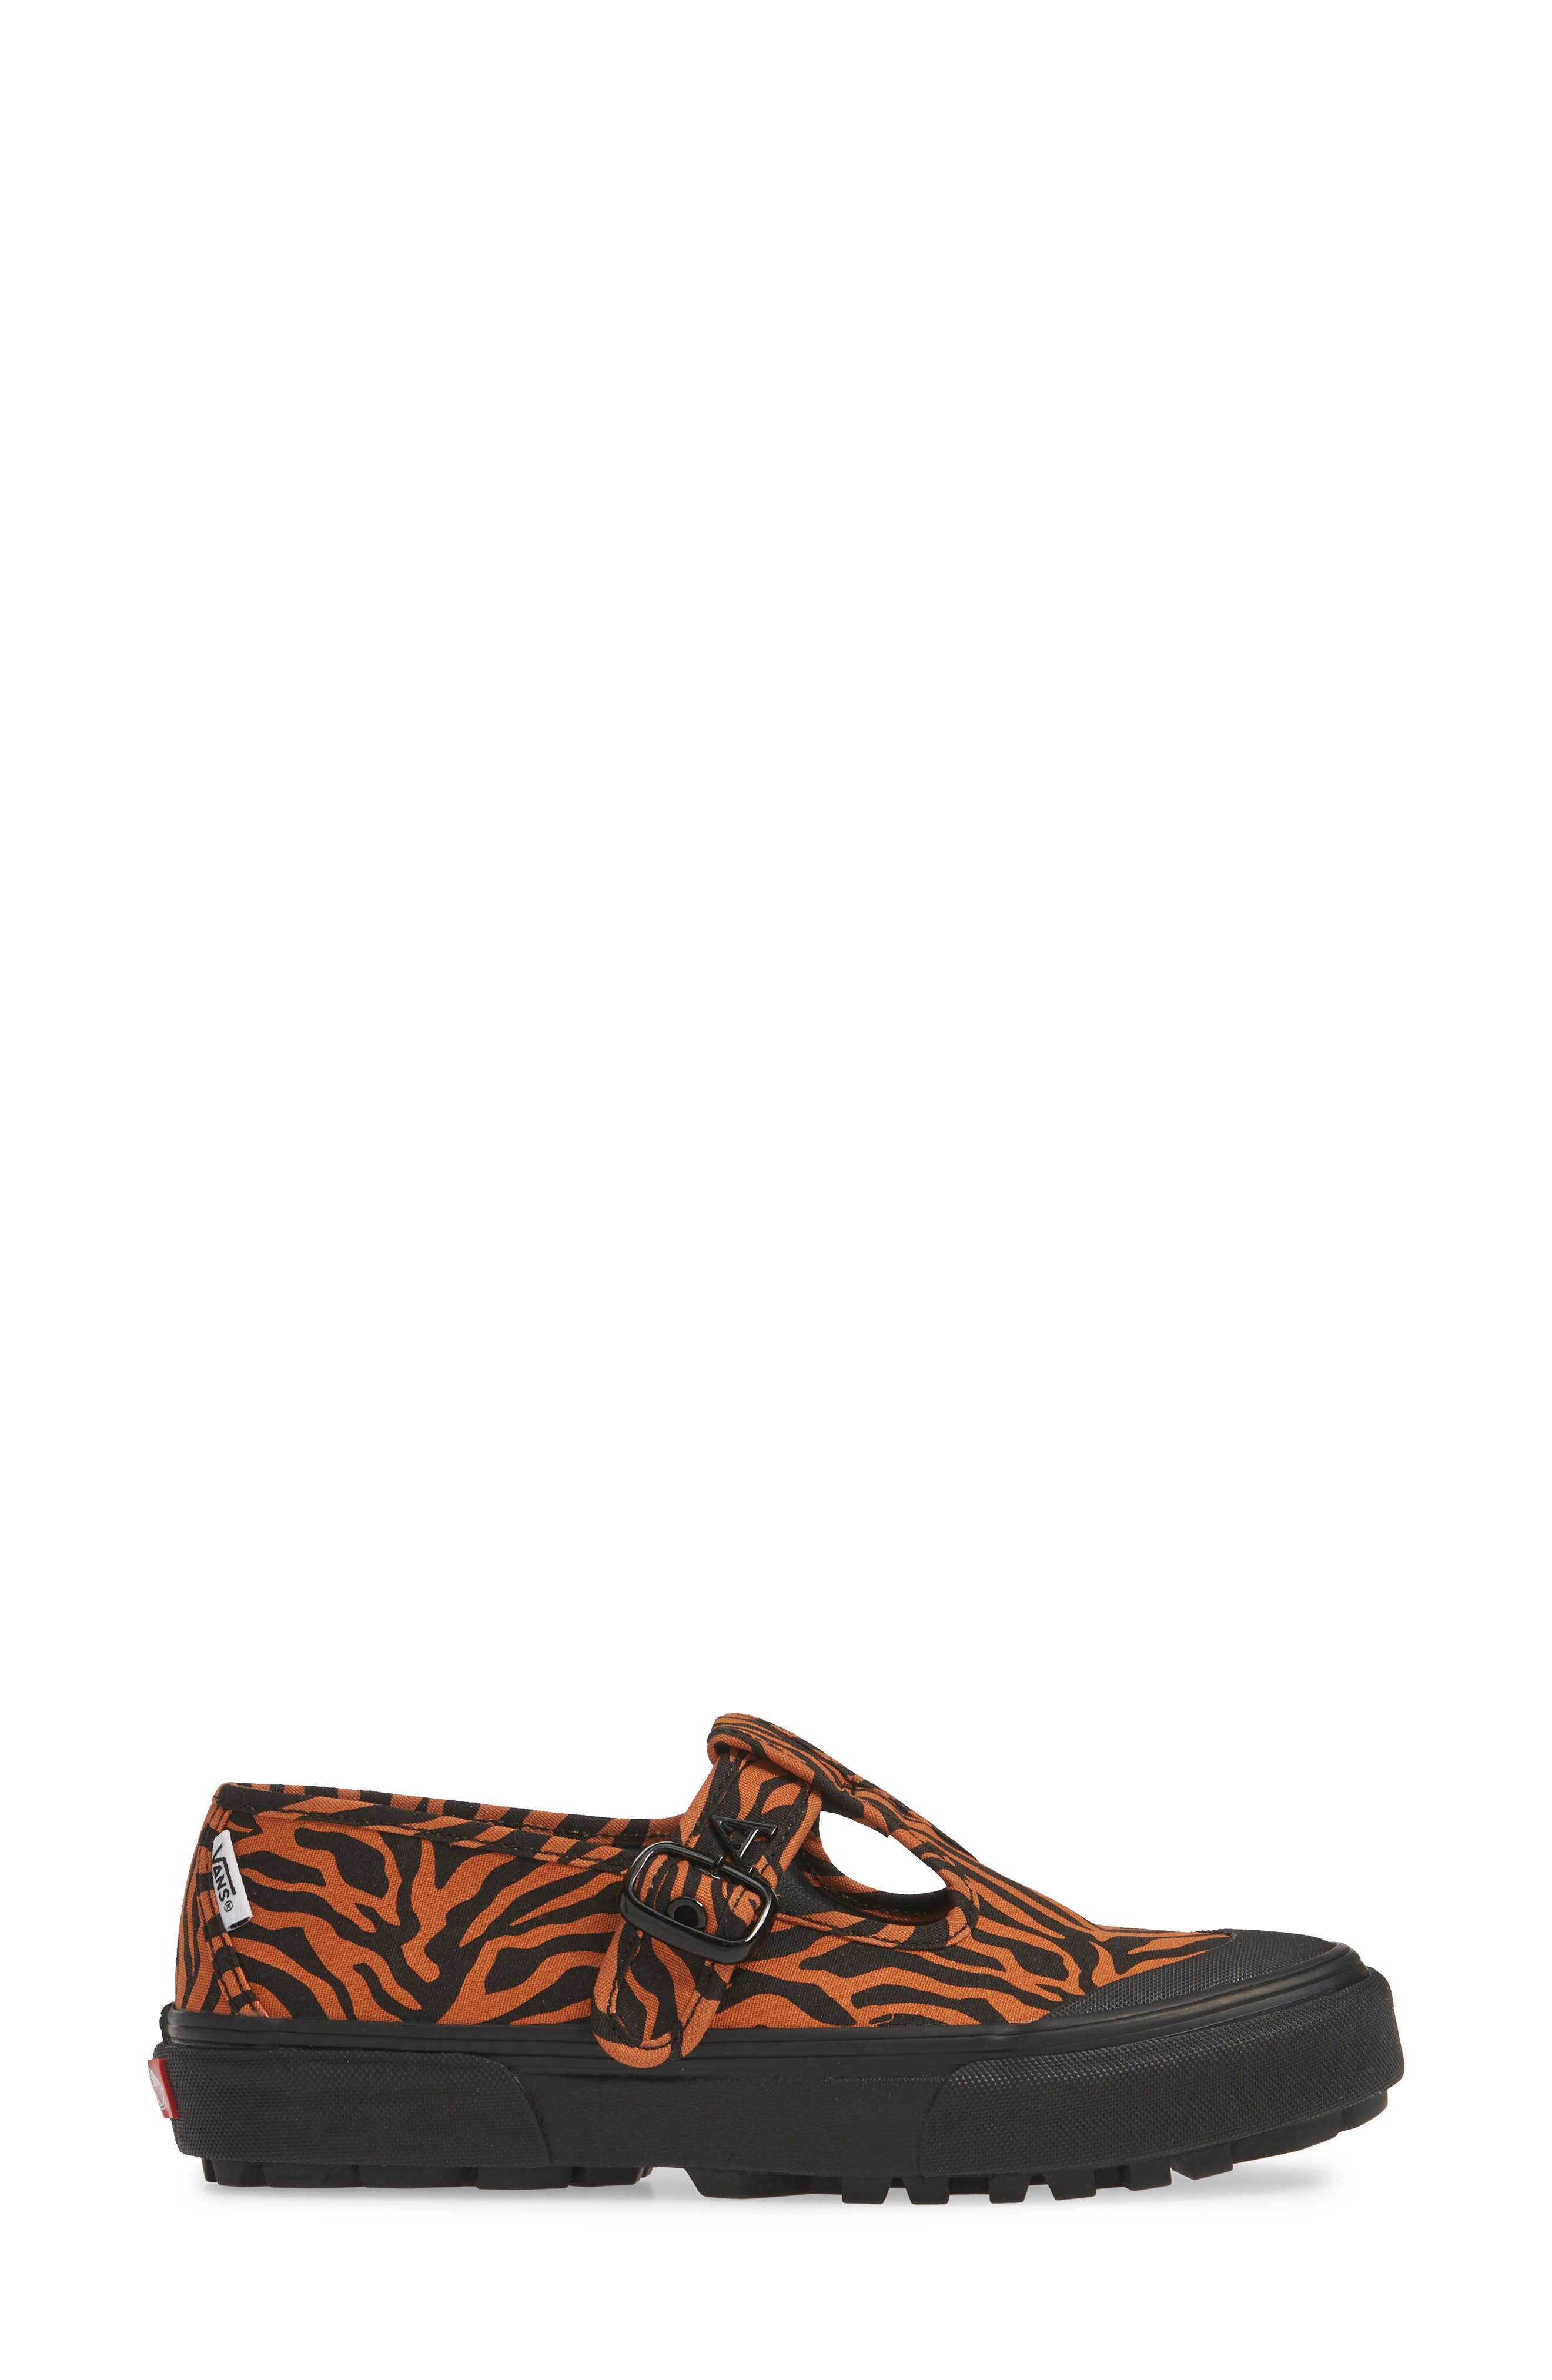 VANS, x Ashley Williams Style 38 Tiger Sneaker, Alternate thumbnail 3, color, TIGER/ BLACK